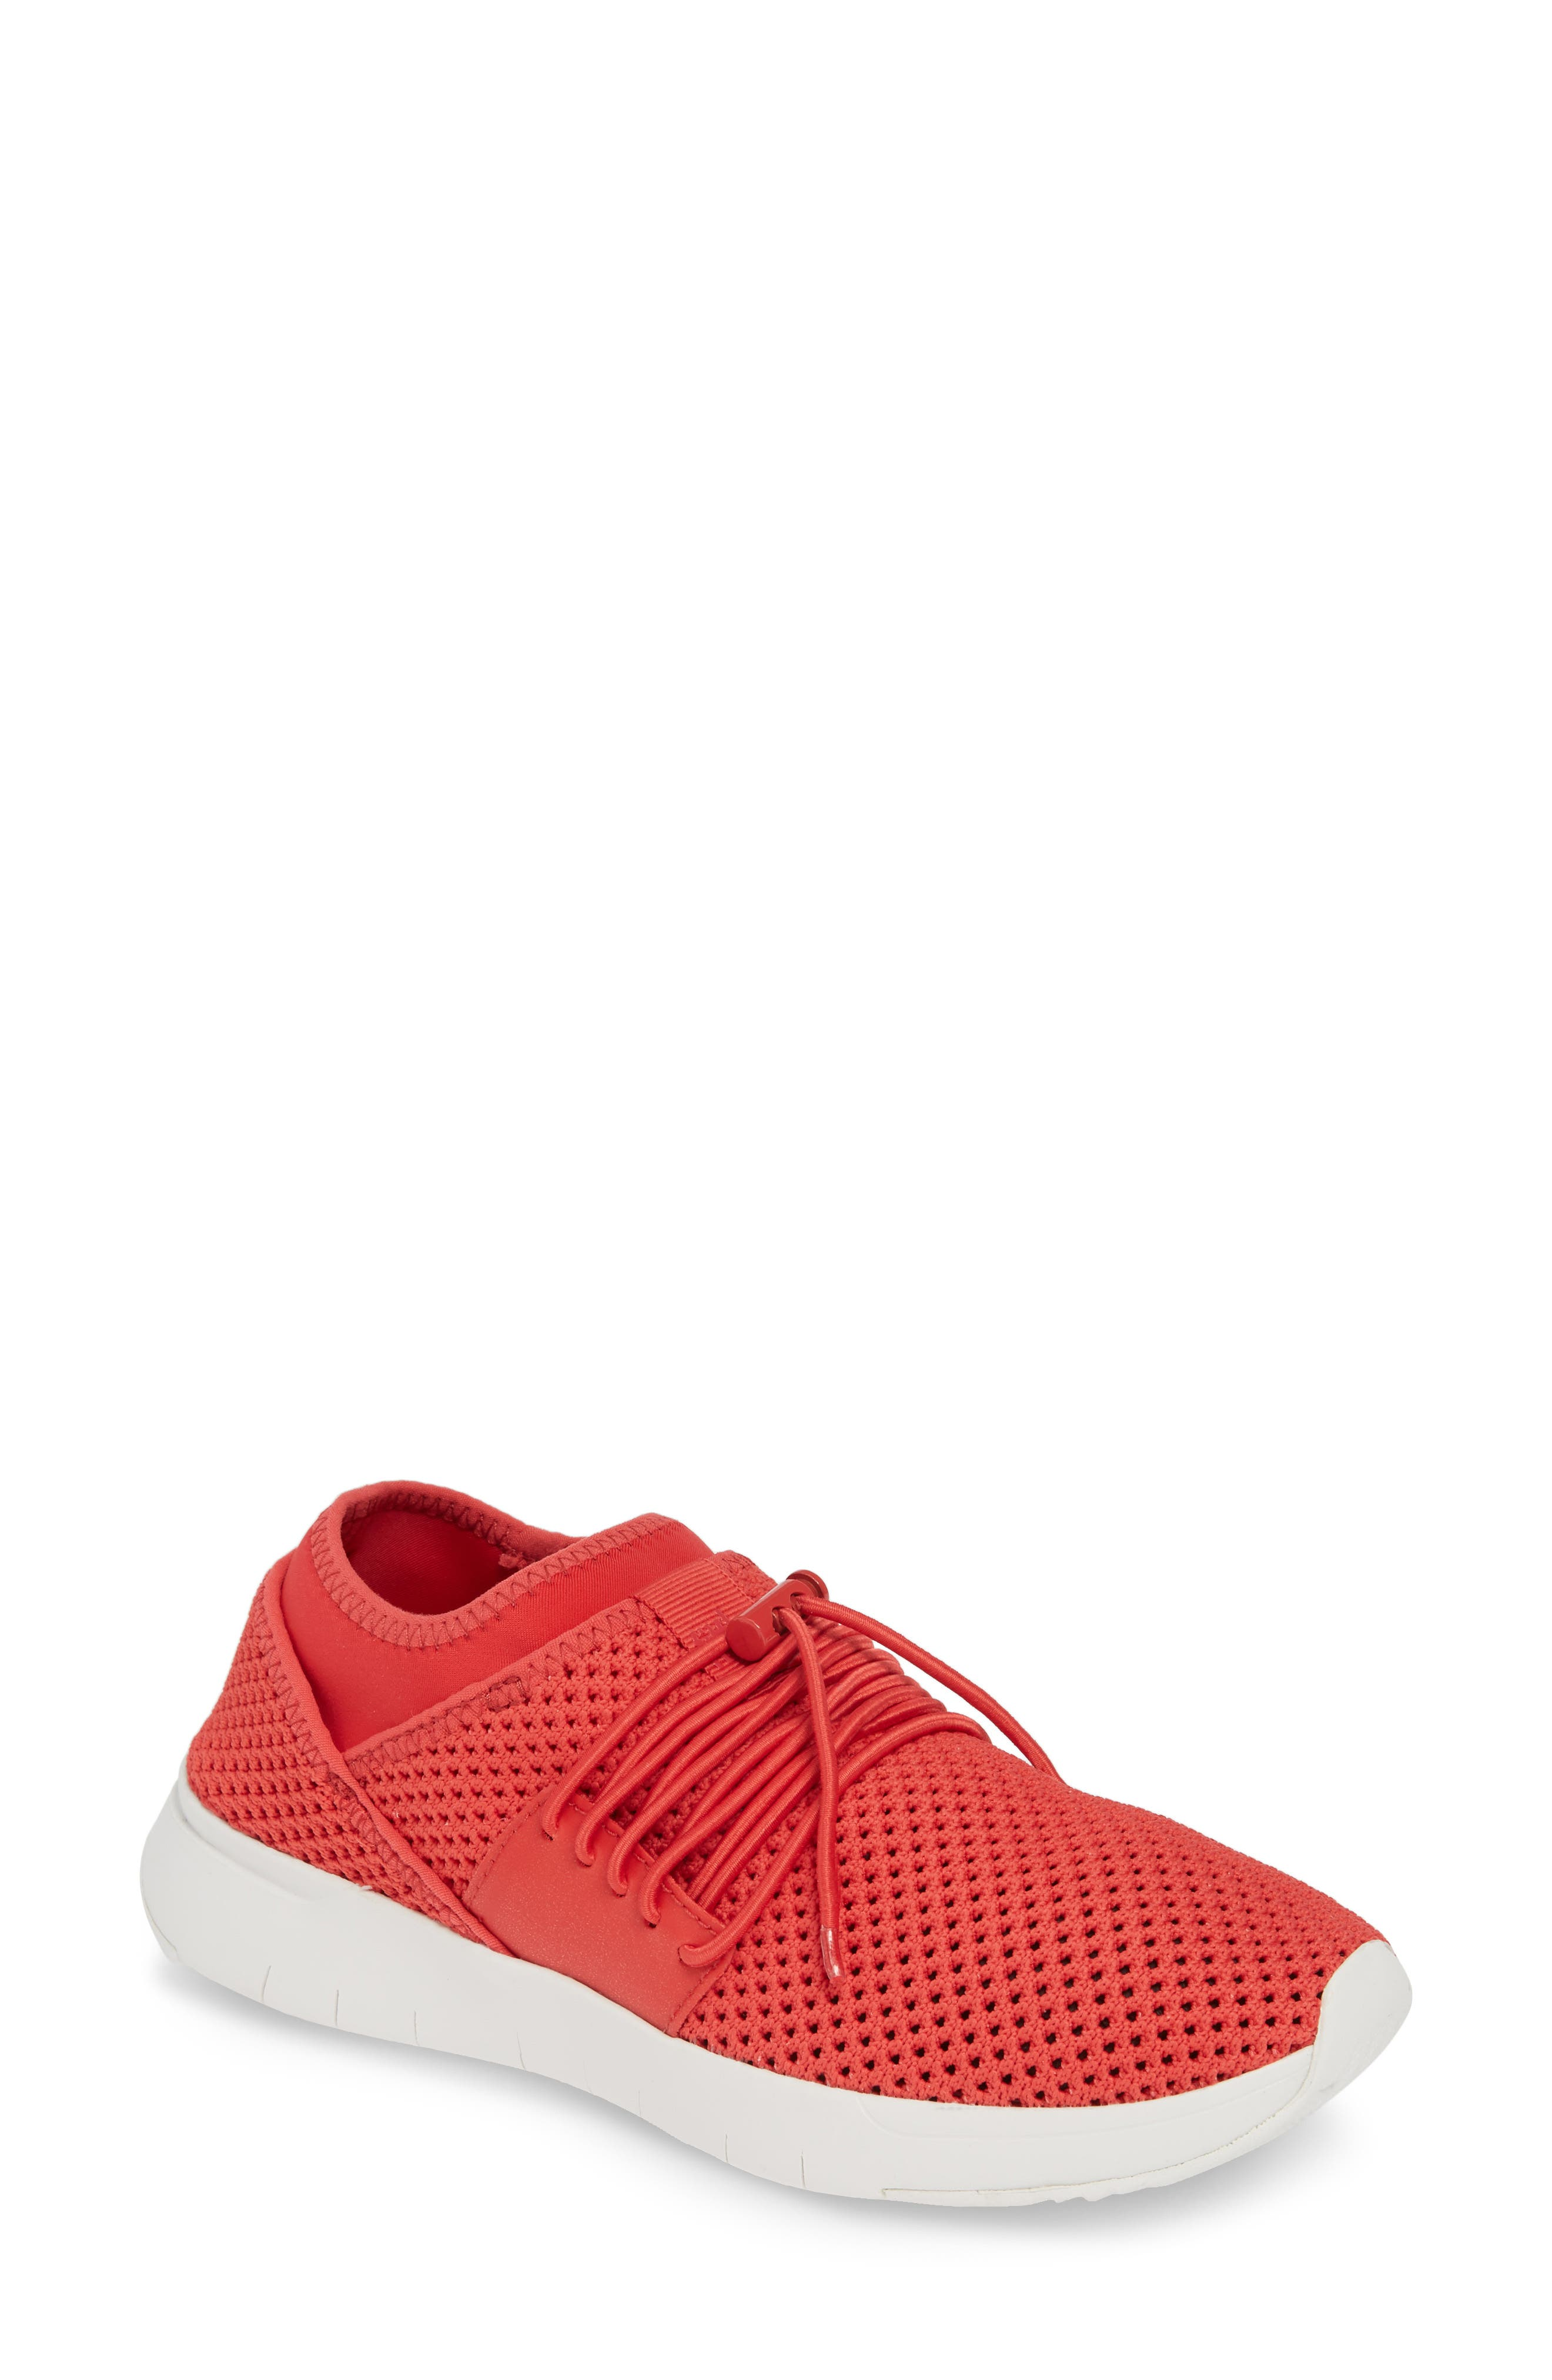 FITFLOP, Airmesh Sneaker, Main thumbnail 1, color, PASSION RED